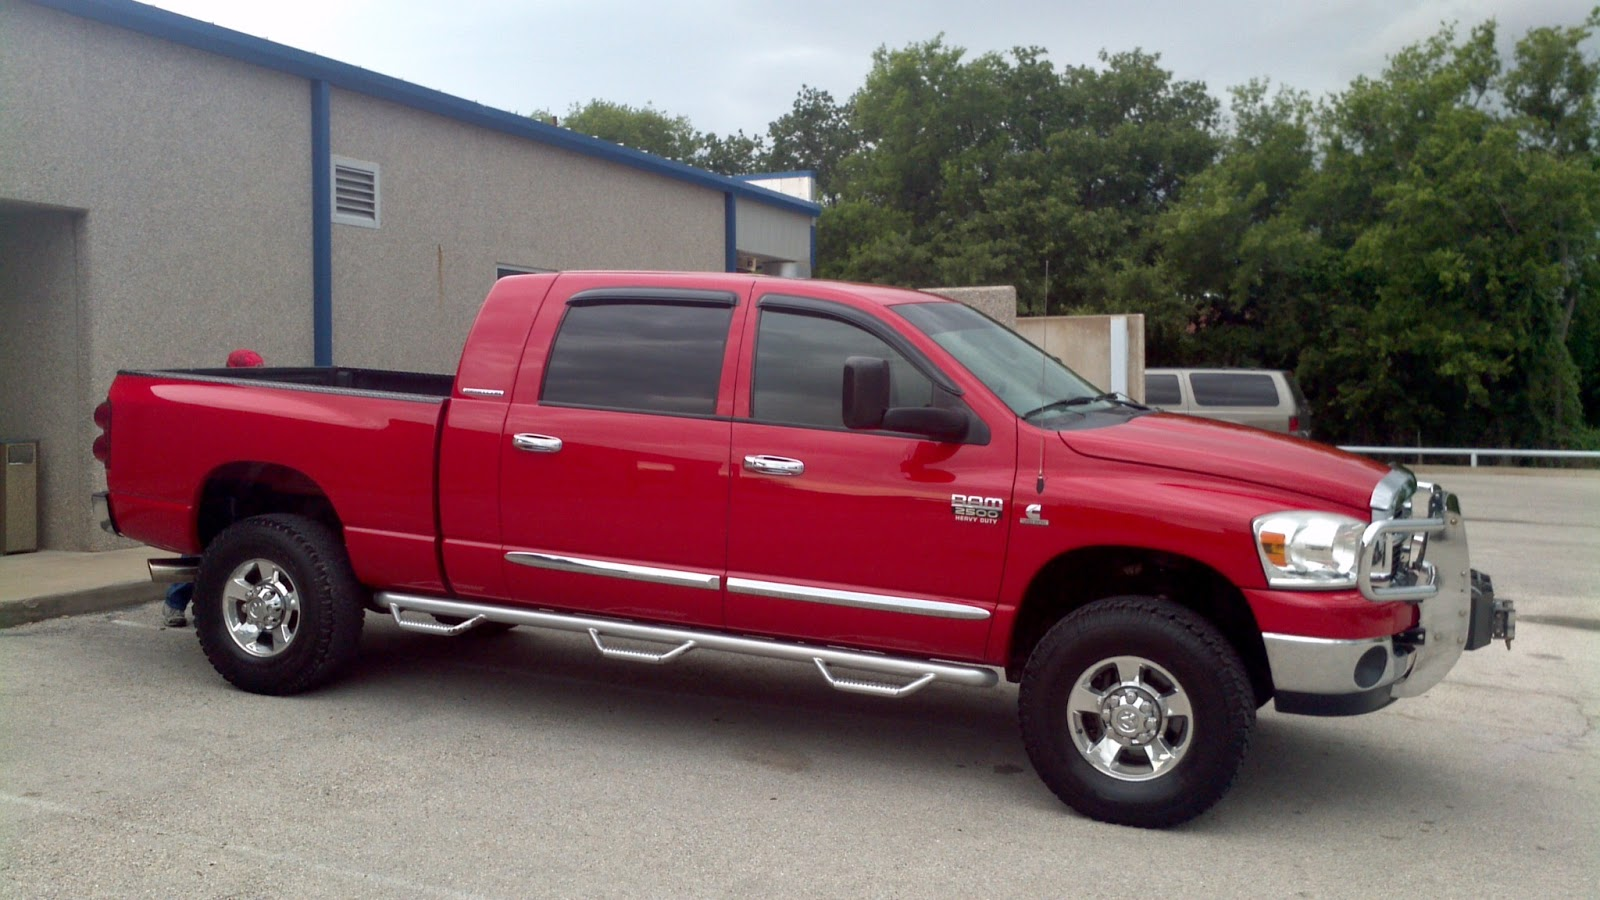 tdy sales 817 243 9840 for sale 2007 dodge ram 2500 4wd mega cab. Cars Review. Best American Auto & Cars Review